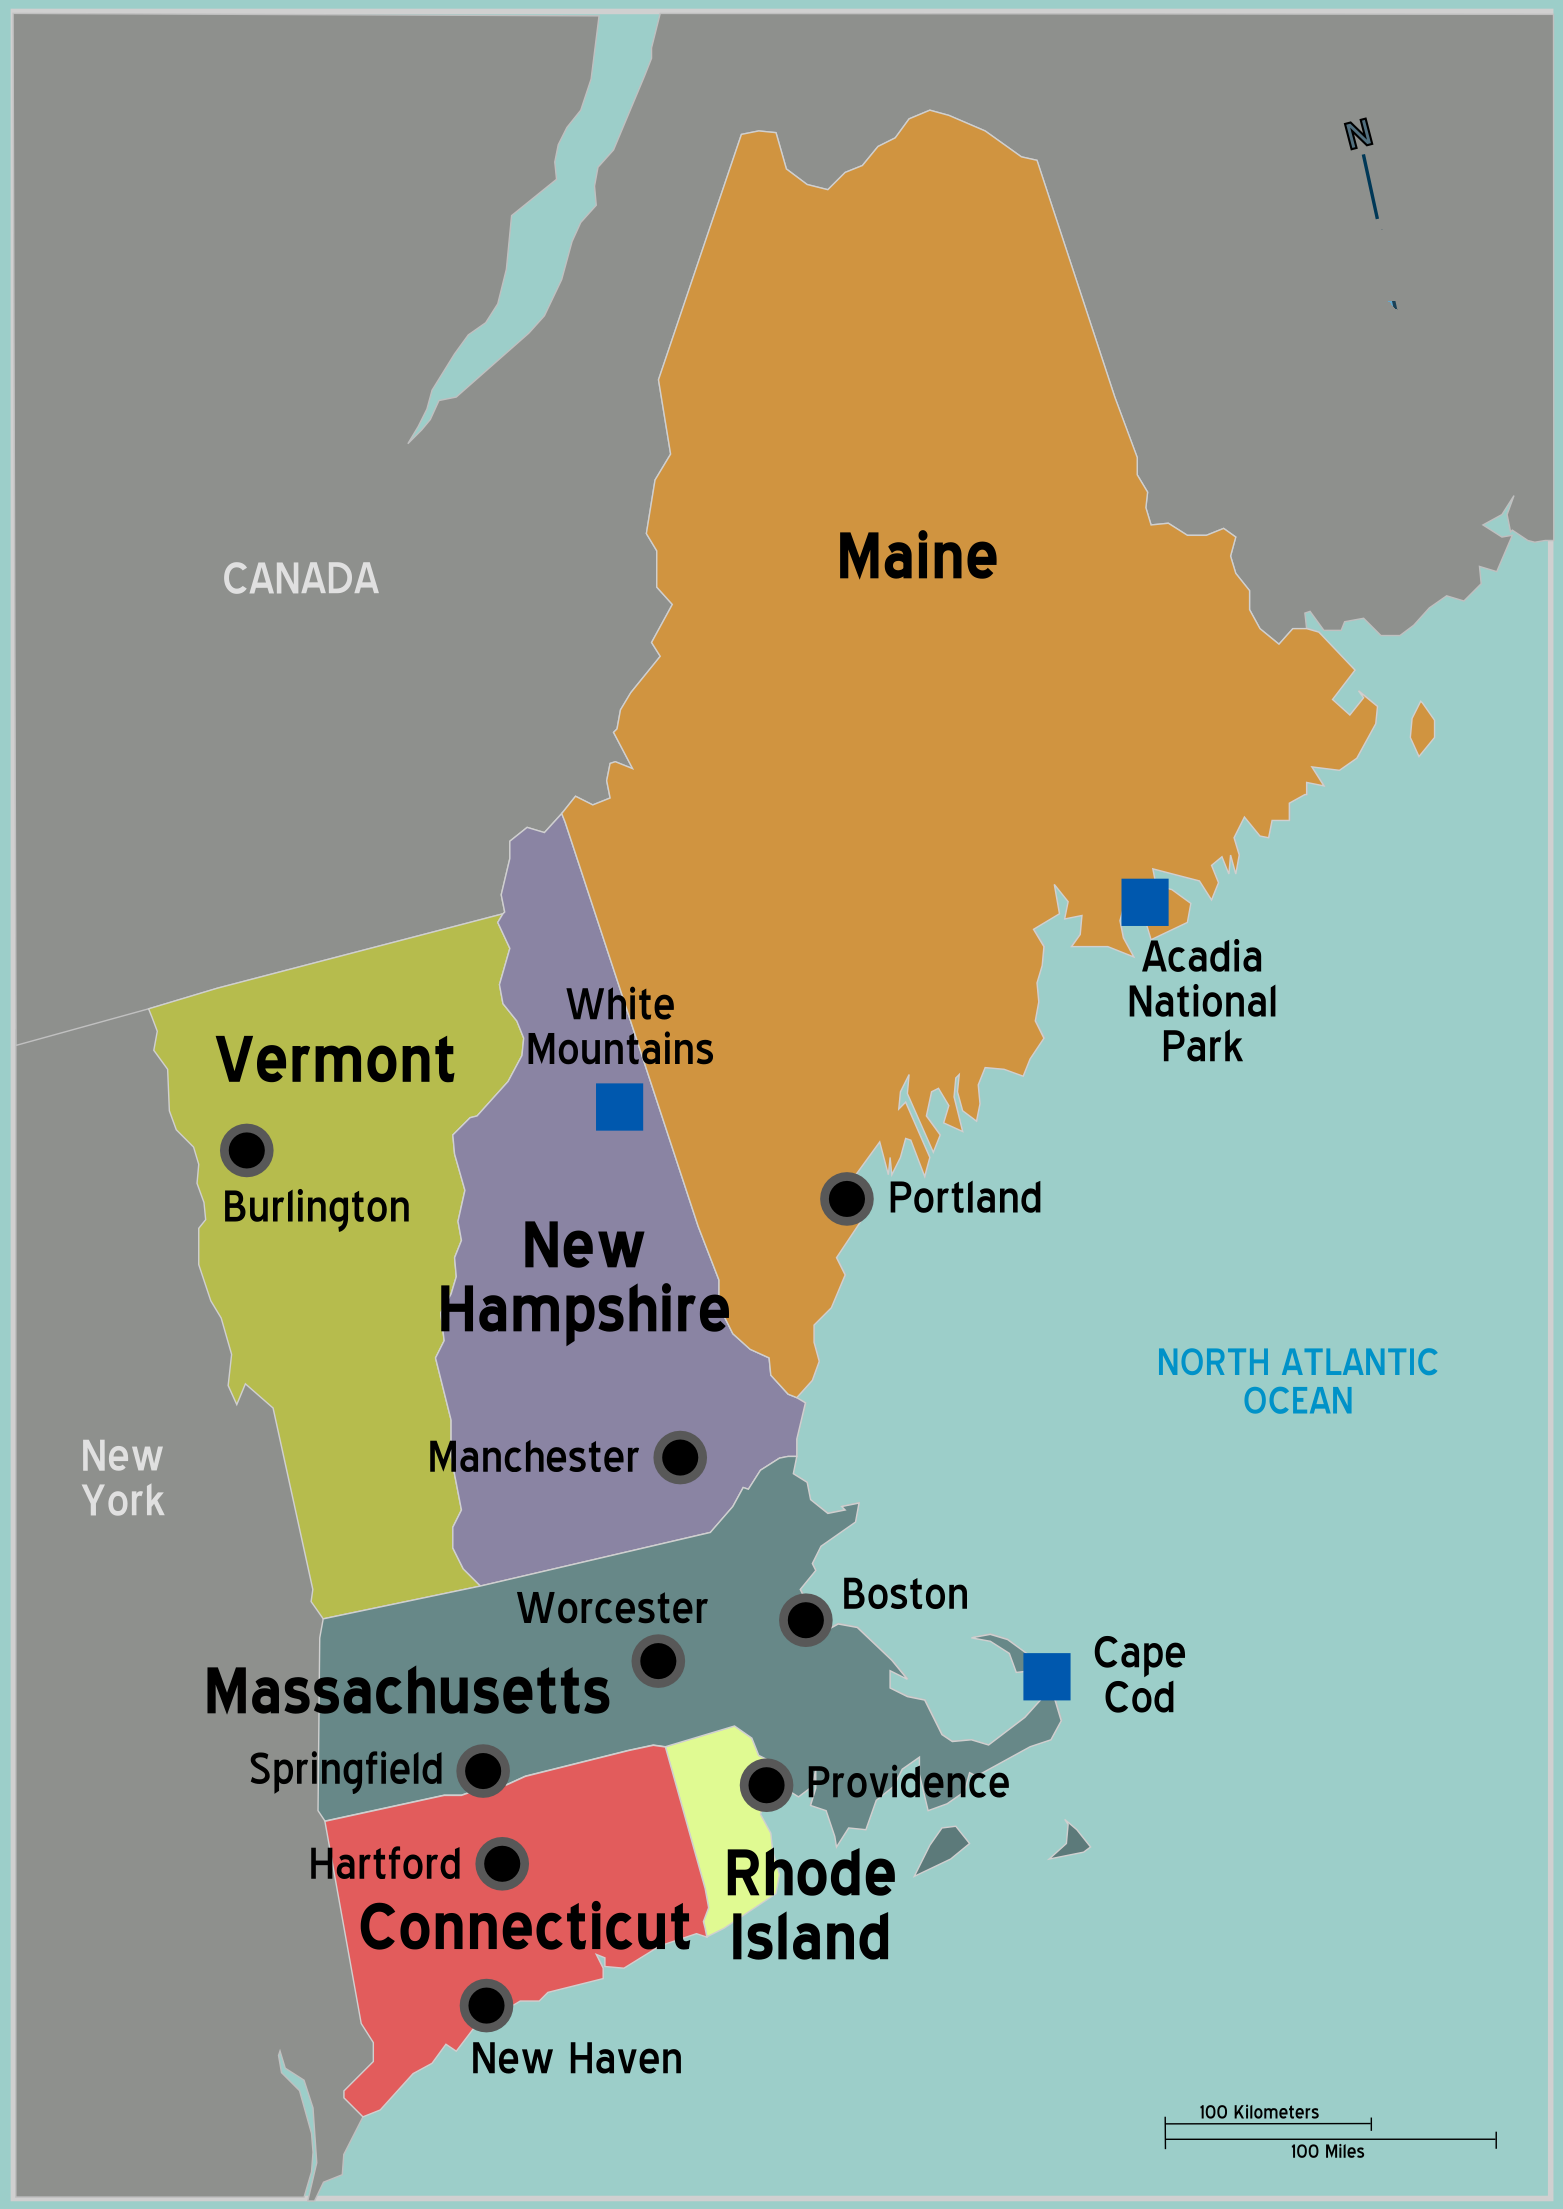 the six states that make up the new england cultural region